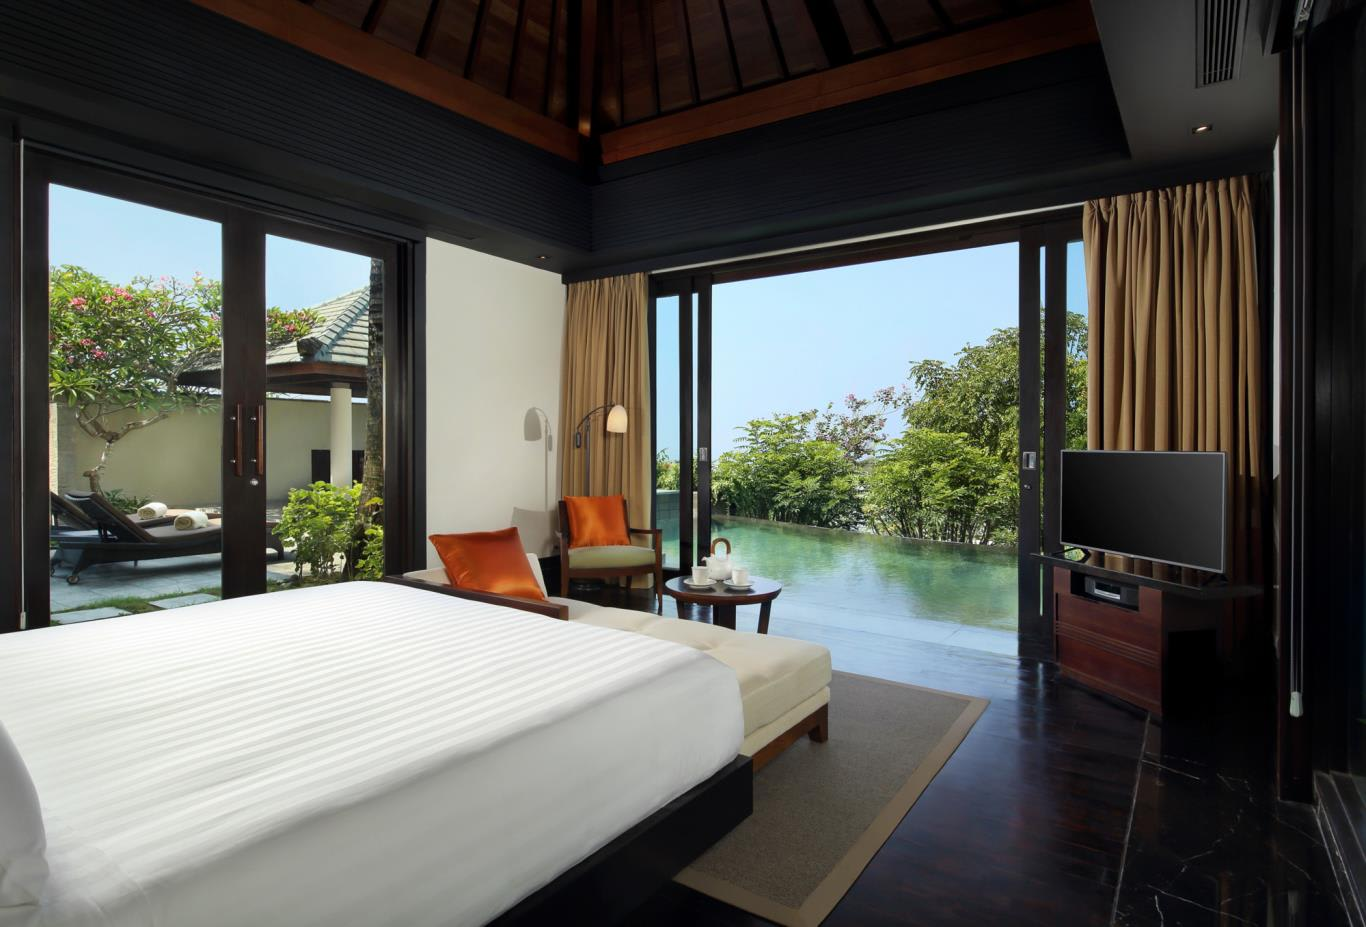 Pool Villa Garden Bedroom